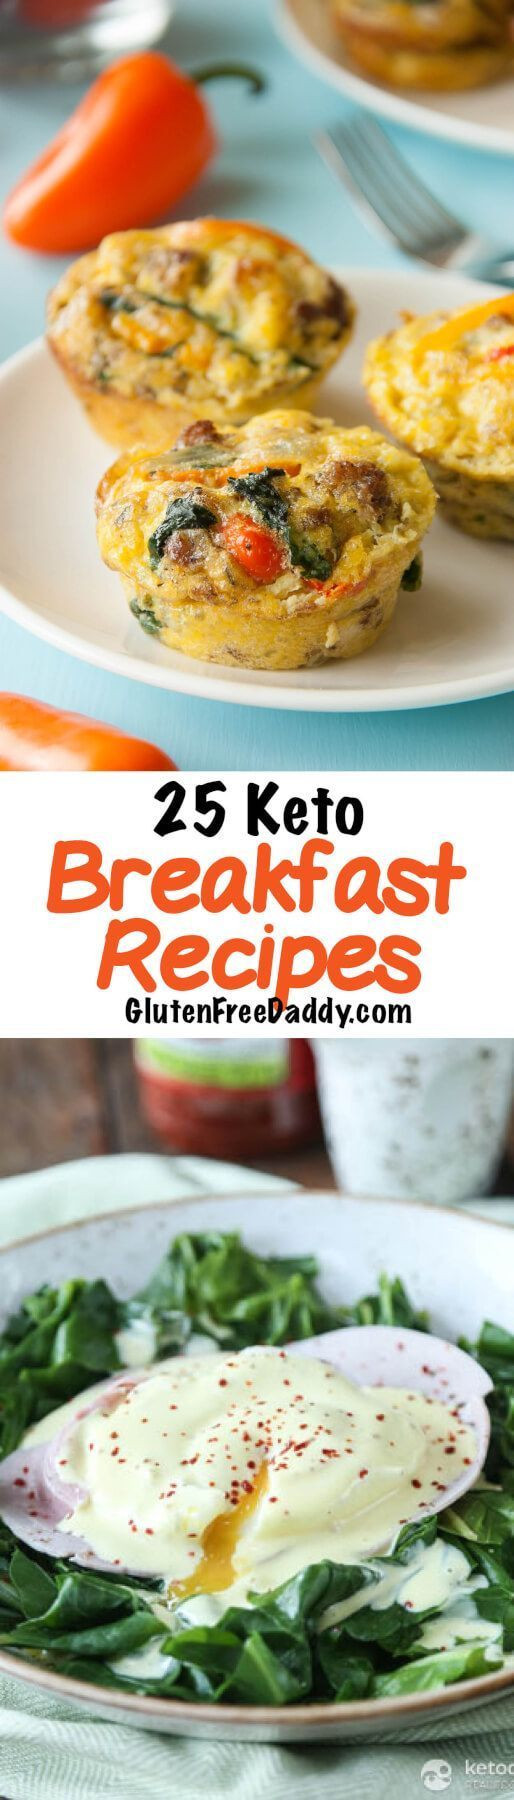 Keto Recipes Breakfast  Best 25 Keto t breakfast ideas on Pinterest